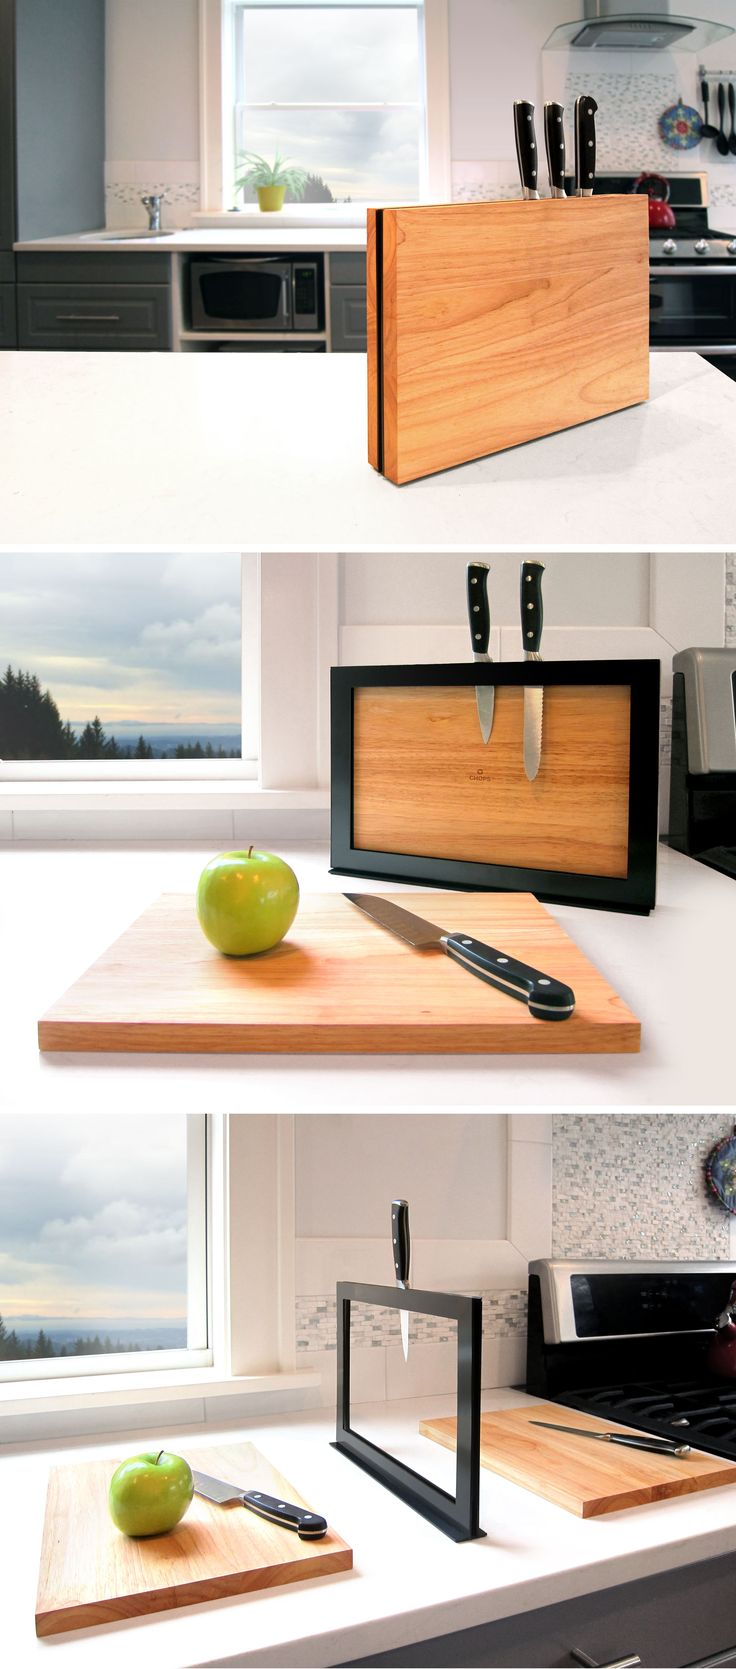 Chops consists of two solid wood cutting boards that magnetically connect to two sides of a knife rack. It's a perfect place to store and dry your cutting boards. Its base keeps the stand stable, with or without cutting boards attached.   http://ilovehandles.com/shop/chops/